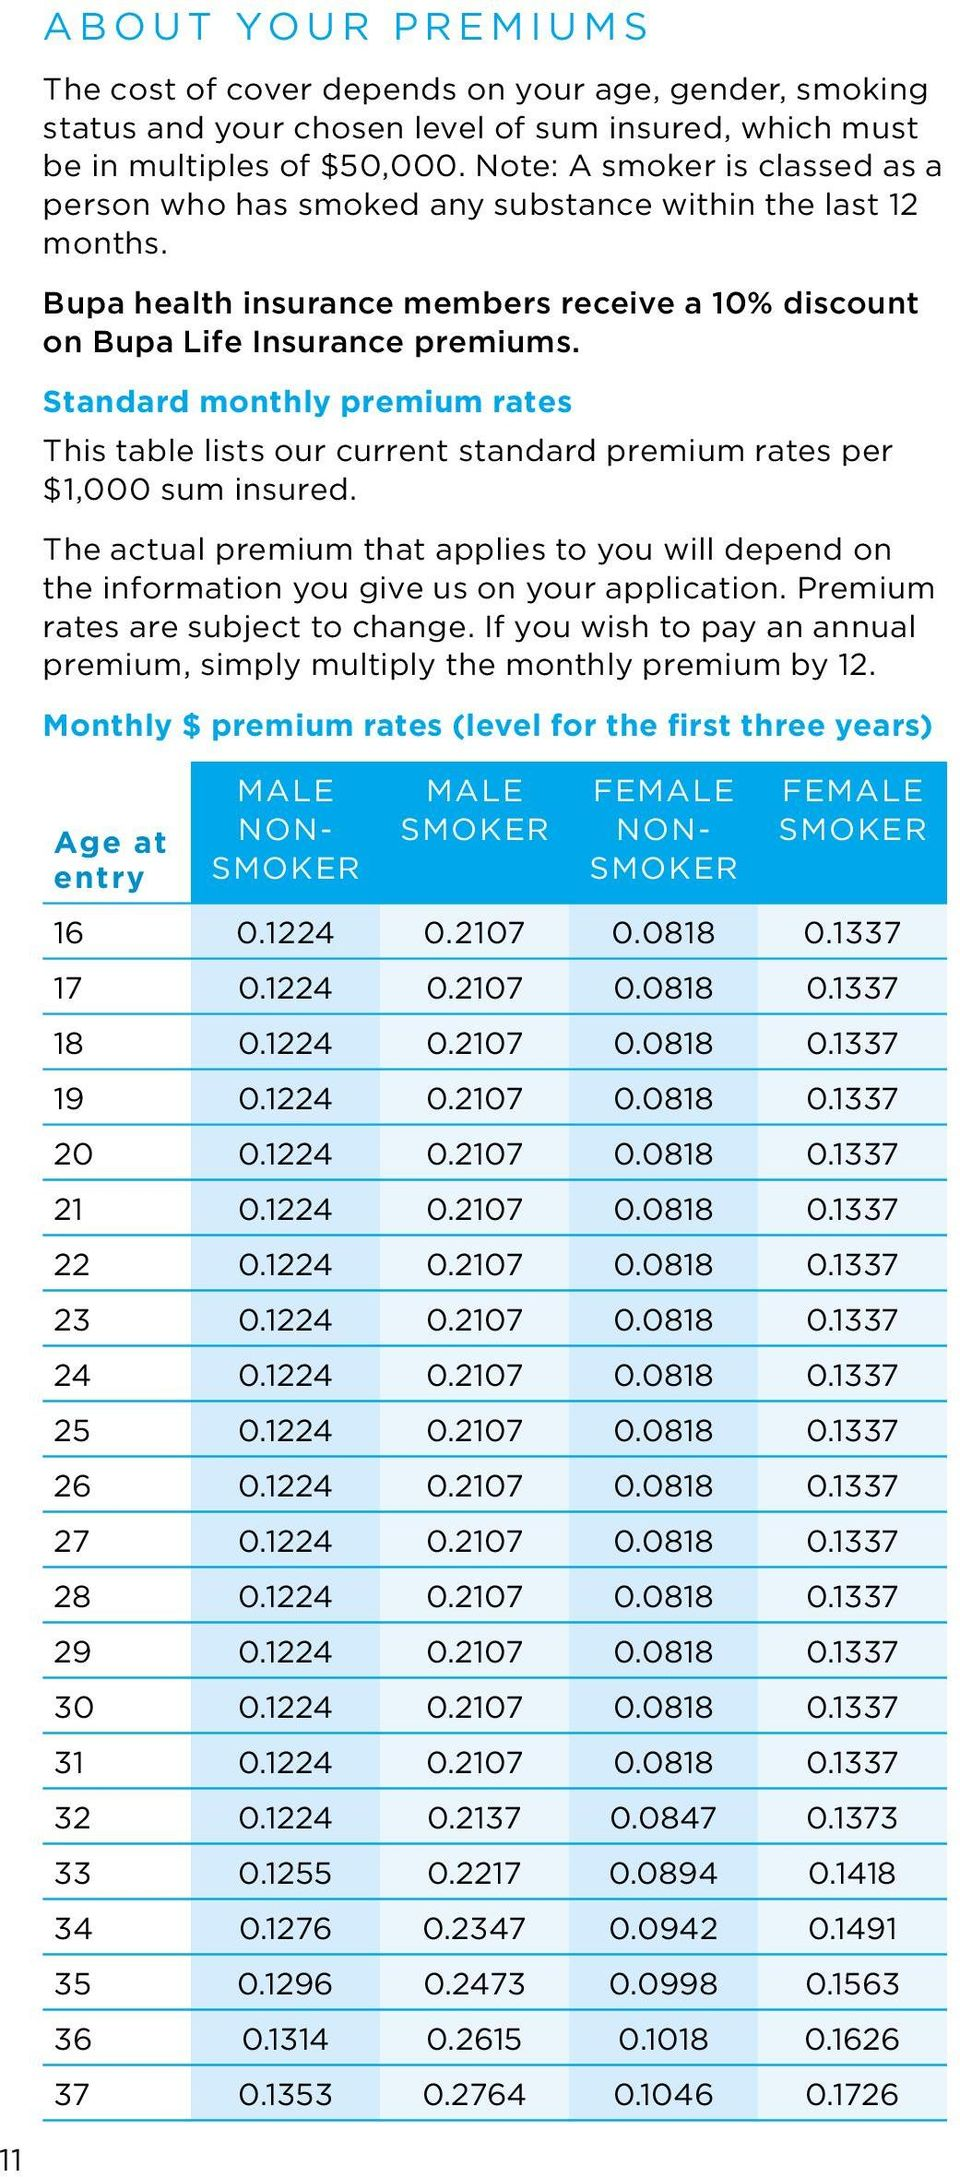 Standard monthly premium rates This table lists our current standard premium rates per $1,000 sum insured.